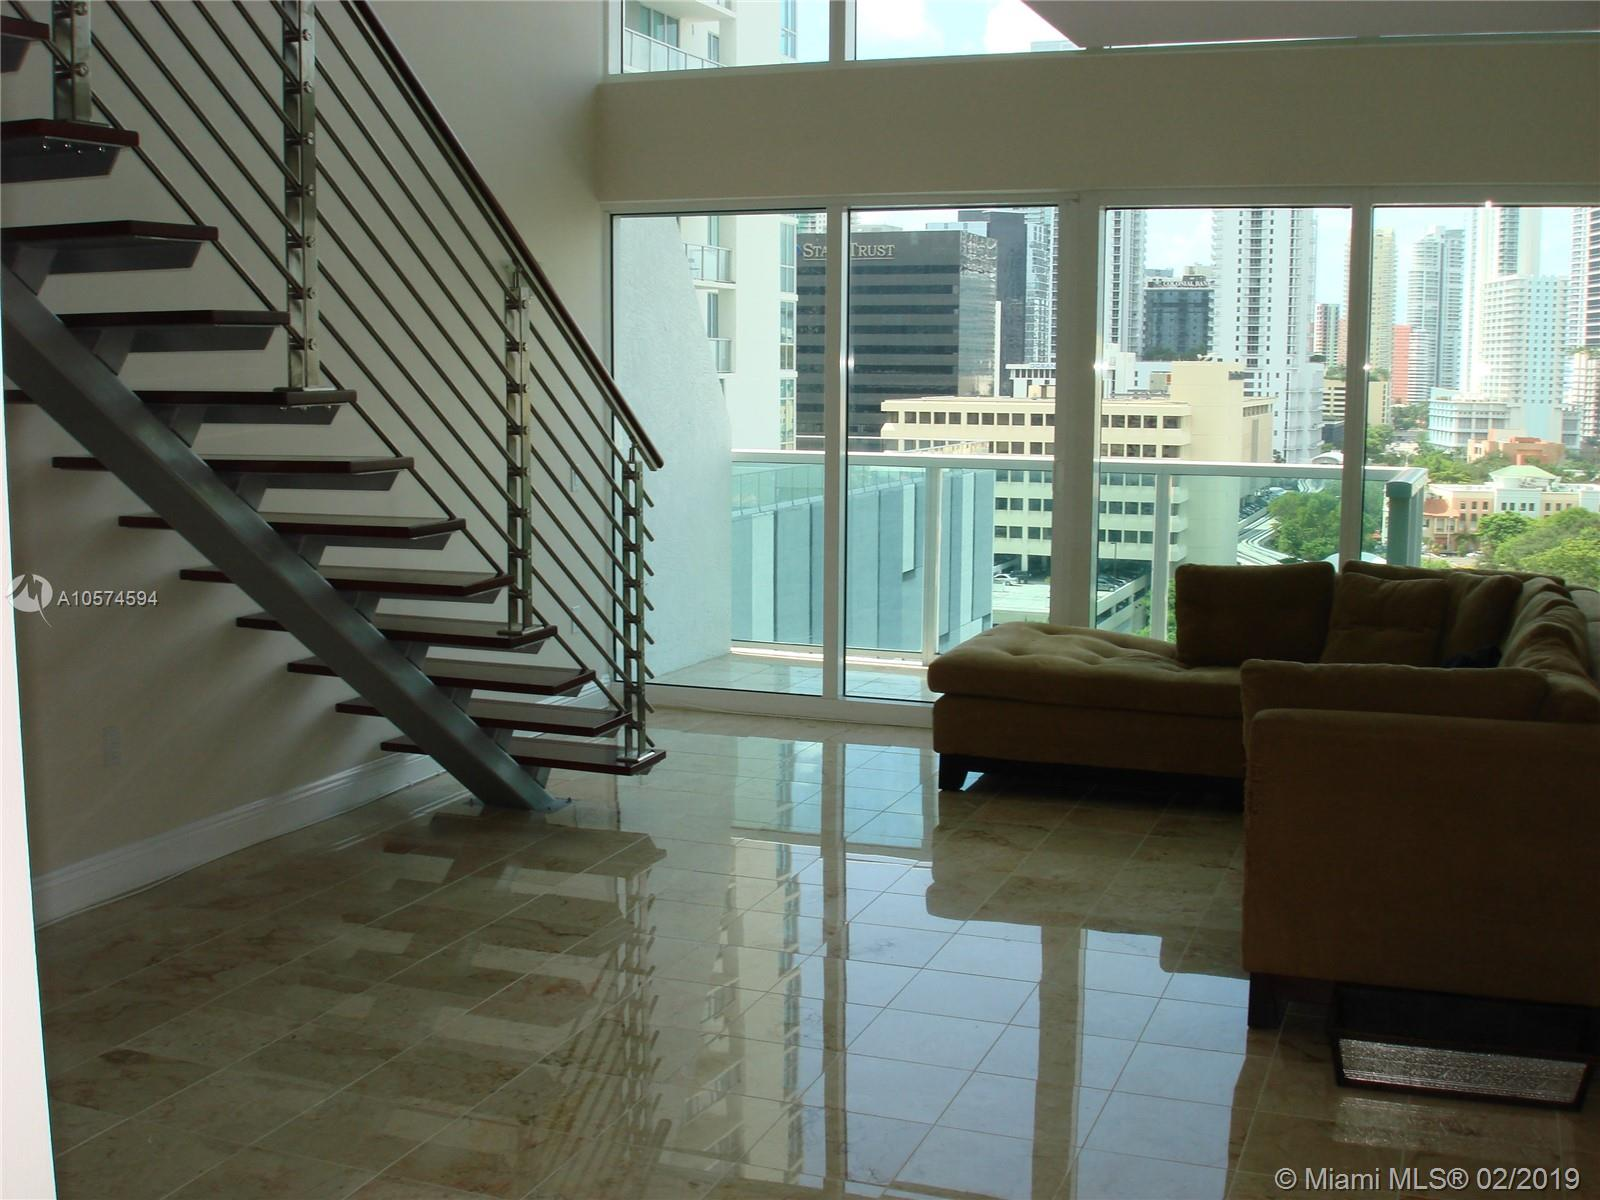 41 SE 5th Street, Miami, FL 33131-2504, Brickell on the River South #804, Brickell, Miami A10574594 image #4